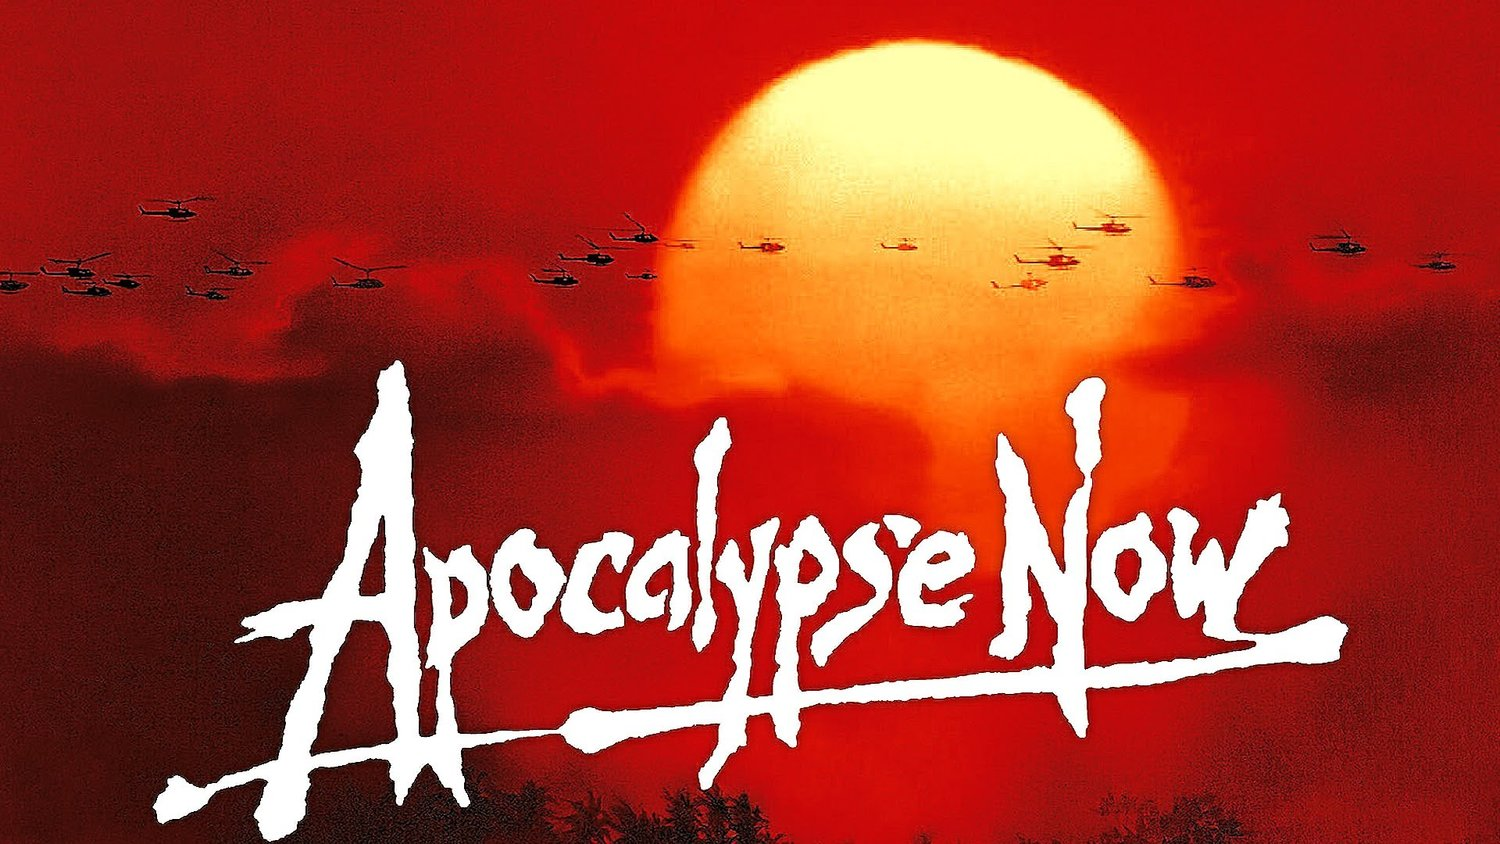 APOCALYPSE NOW Video Game Drops Kickstarter and Asks for $5 Million on Personal Site